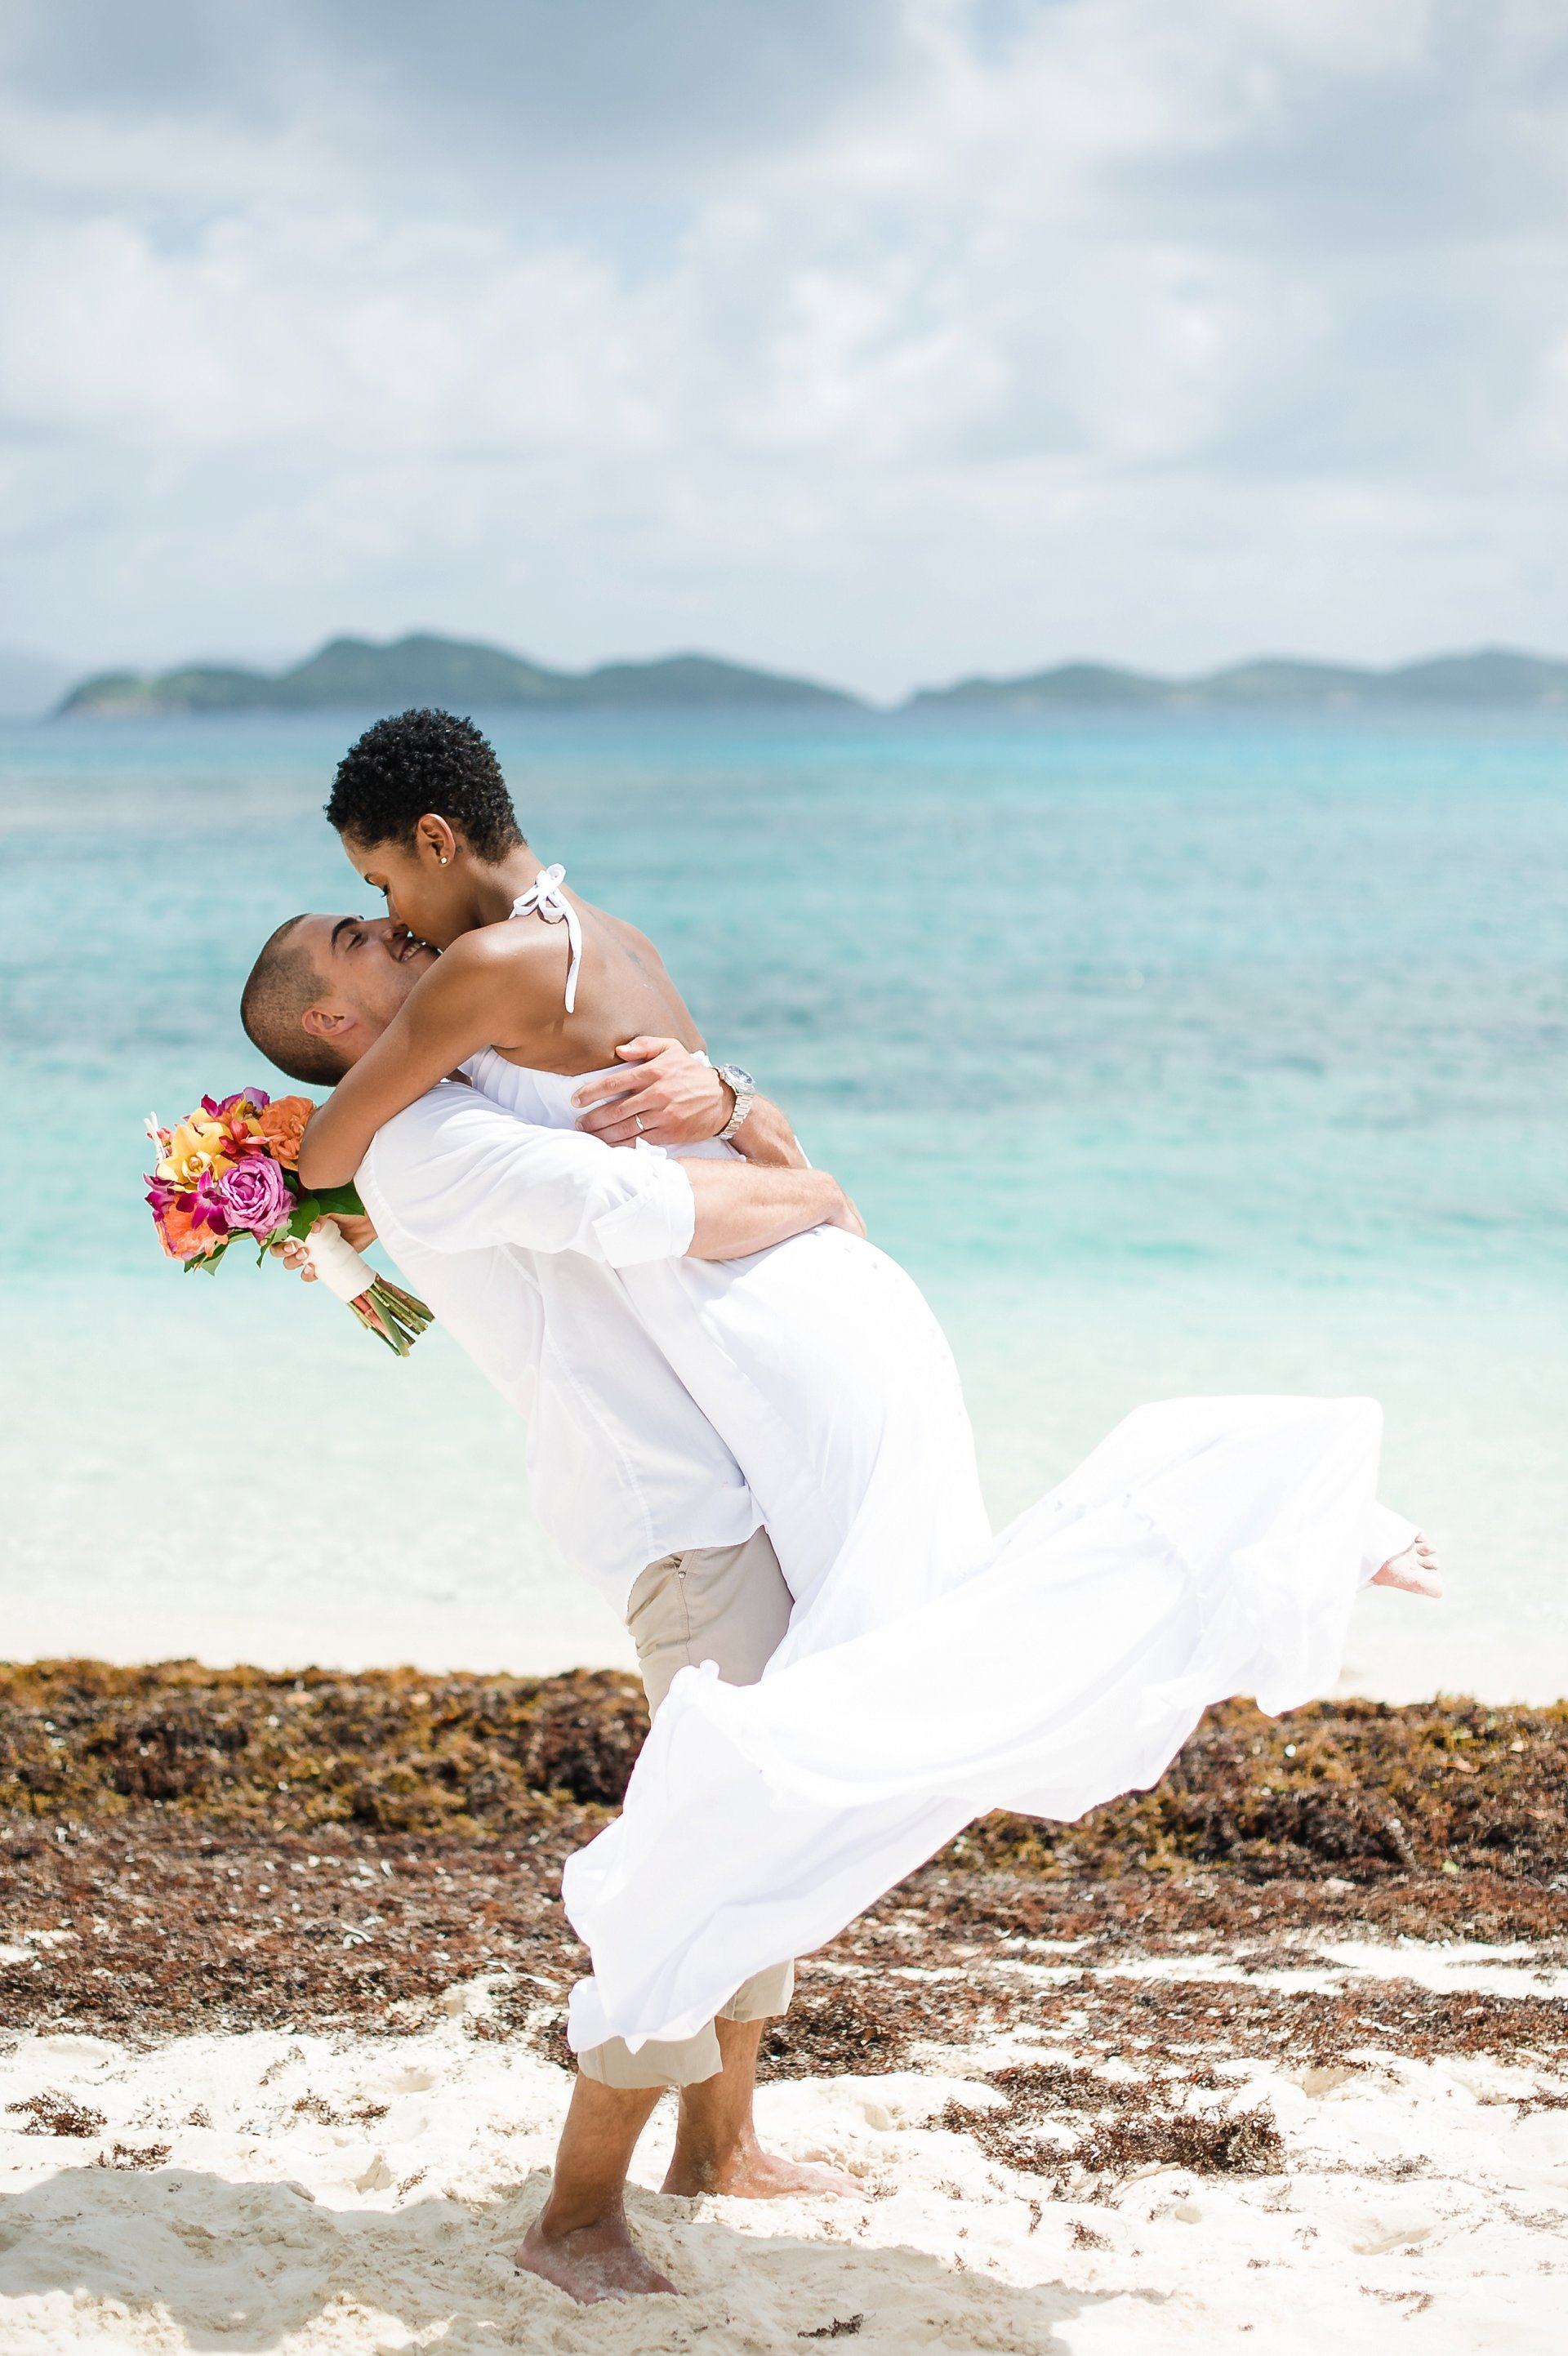 Must have beach wedding photo of groom lifting bride and kissing her.